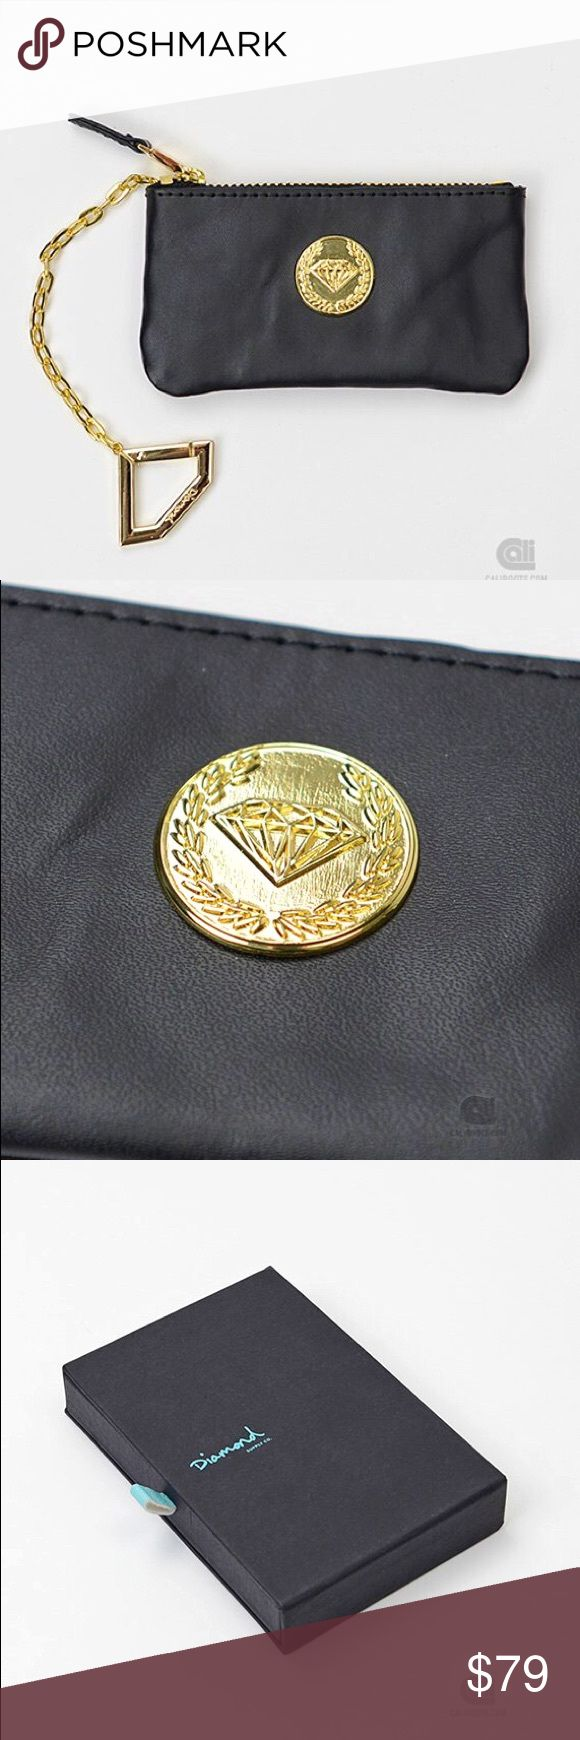 Diamond Supply Co. Black Crest Seal Coin Purse NWT Never used, 100% authentic and comes with dust bag and original packaging from diamond supply Co. black crest seal coin pouch with gold chain diamond keychain.  sold out most places. ! Most places only have the orange ones Diamond Supply Co. Bags Wallets #DiamondSupply